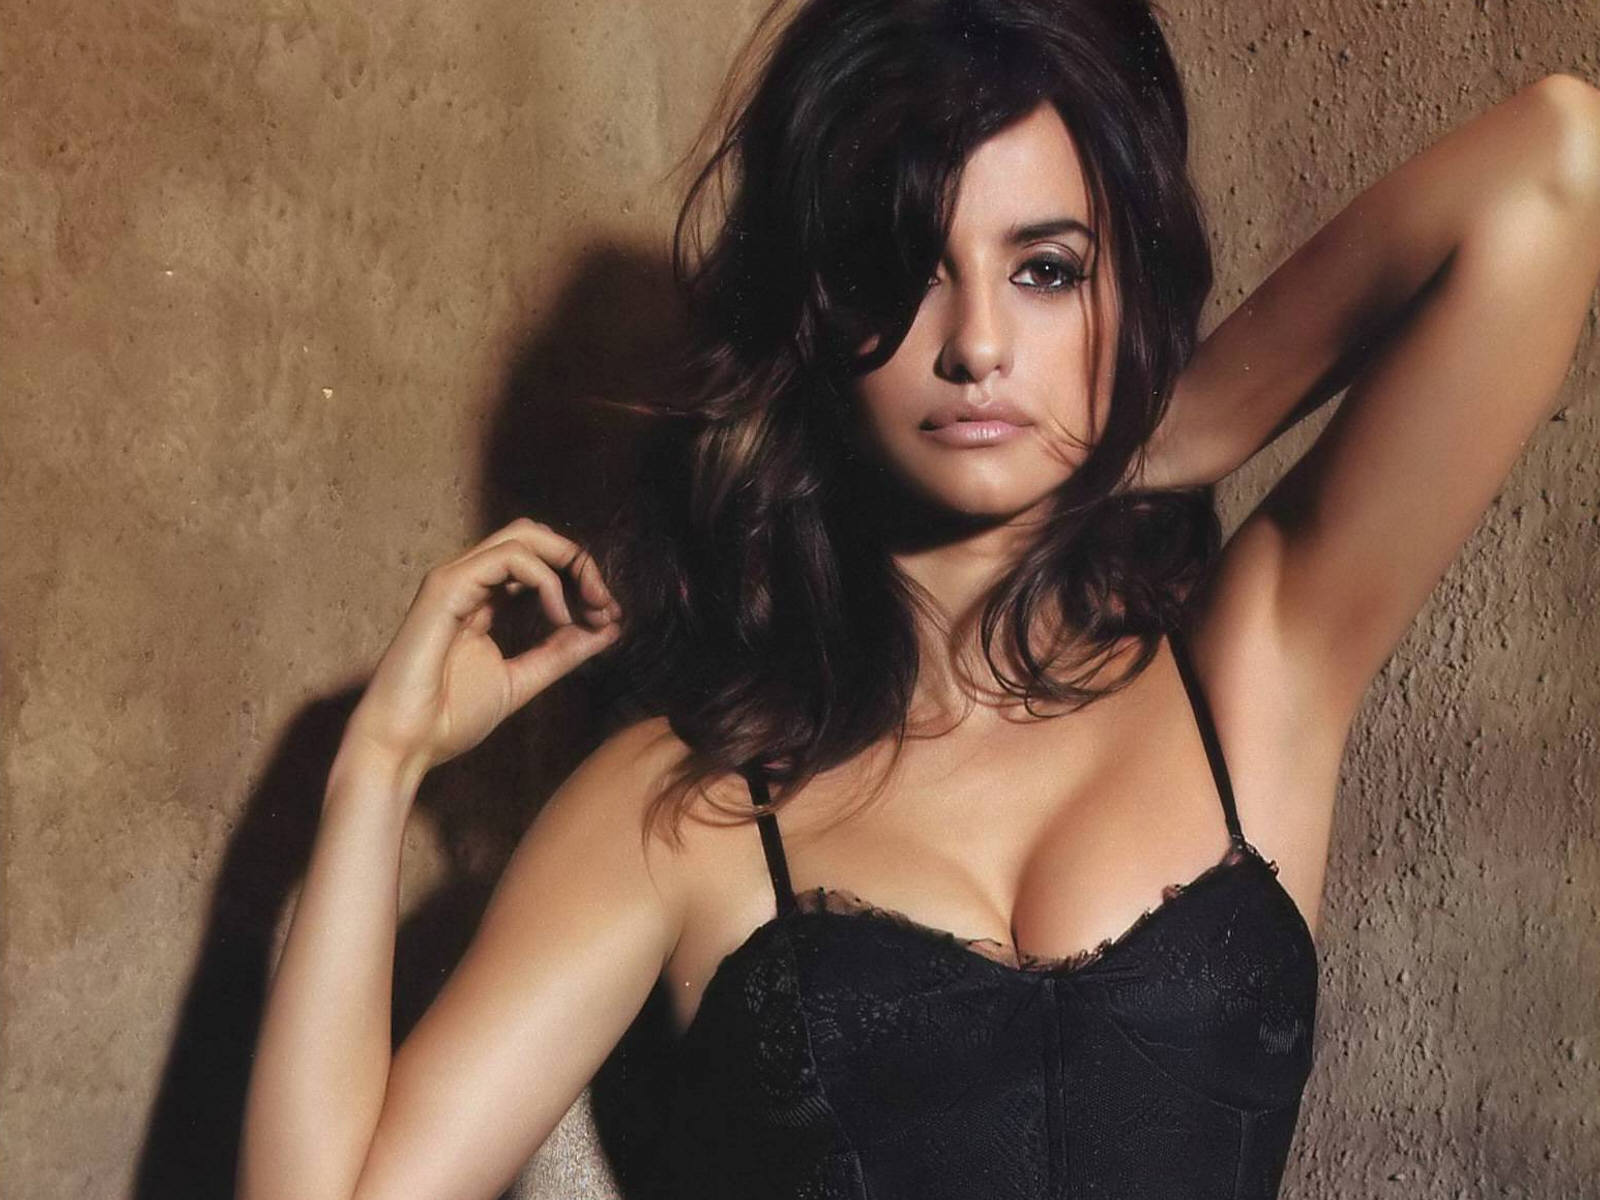 http://2.bp.blogspot.com/-b8Bg61hdegI/UV19dZsxH6I/AAAAAAAABv0/G8AkcnBR1SY/s1600/Hottest+Actress+In+hollywood+Penelope+Cruz.jpg